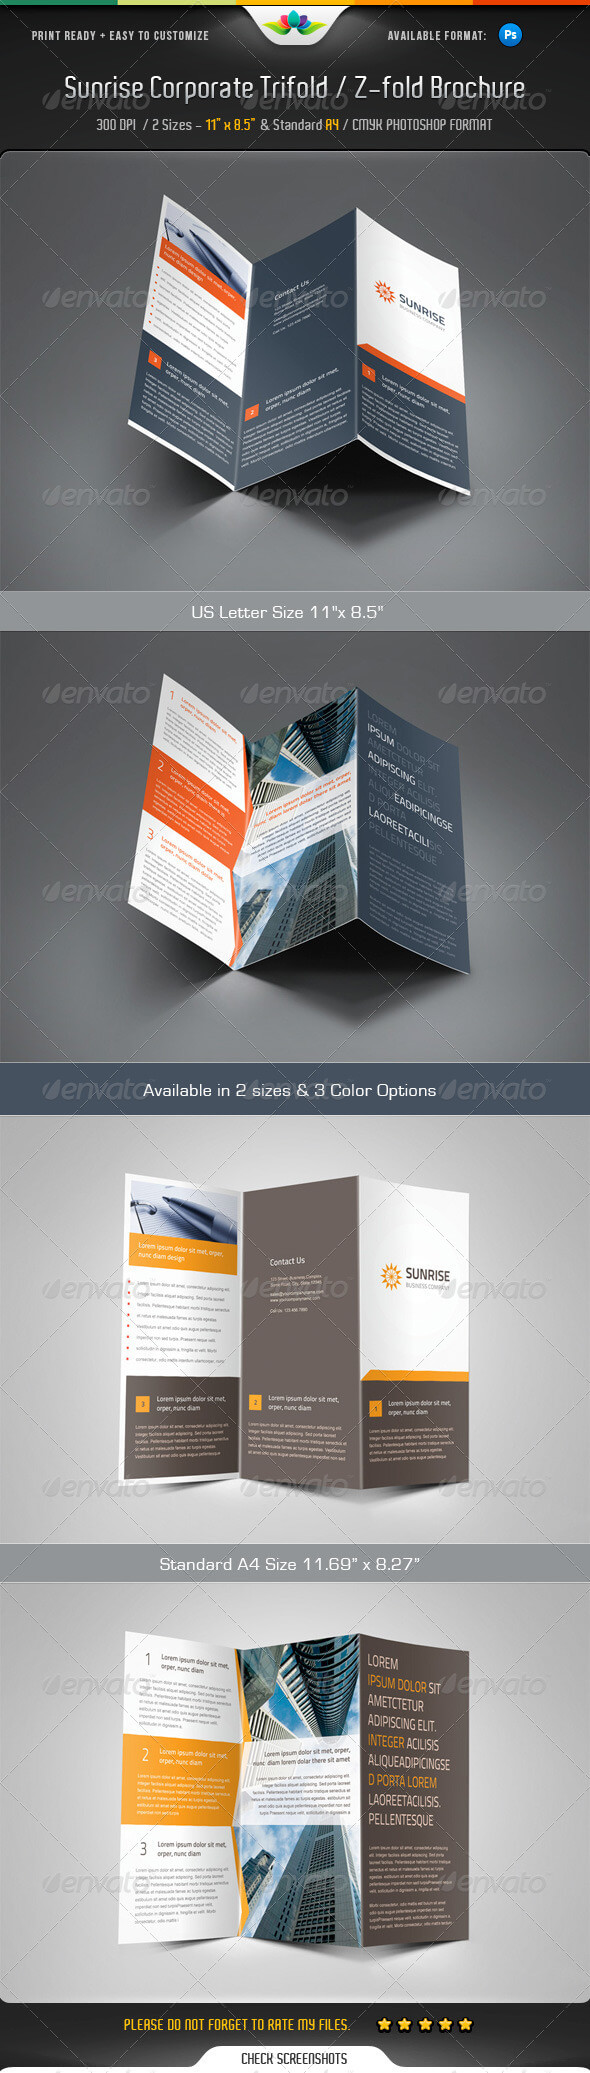 Z Fold Brochure Templates From Graphicriver With Z Fold Brochure Template Indesign